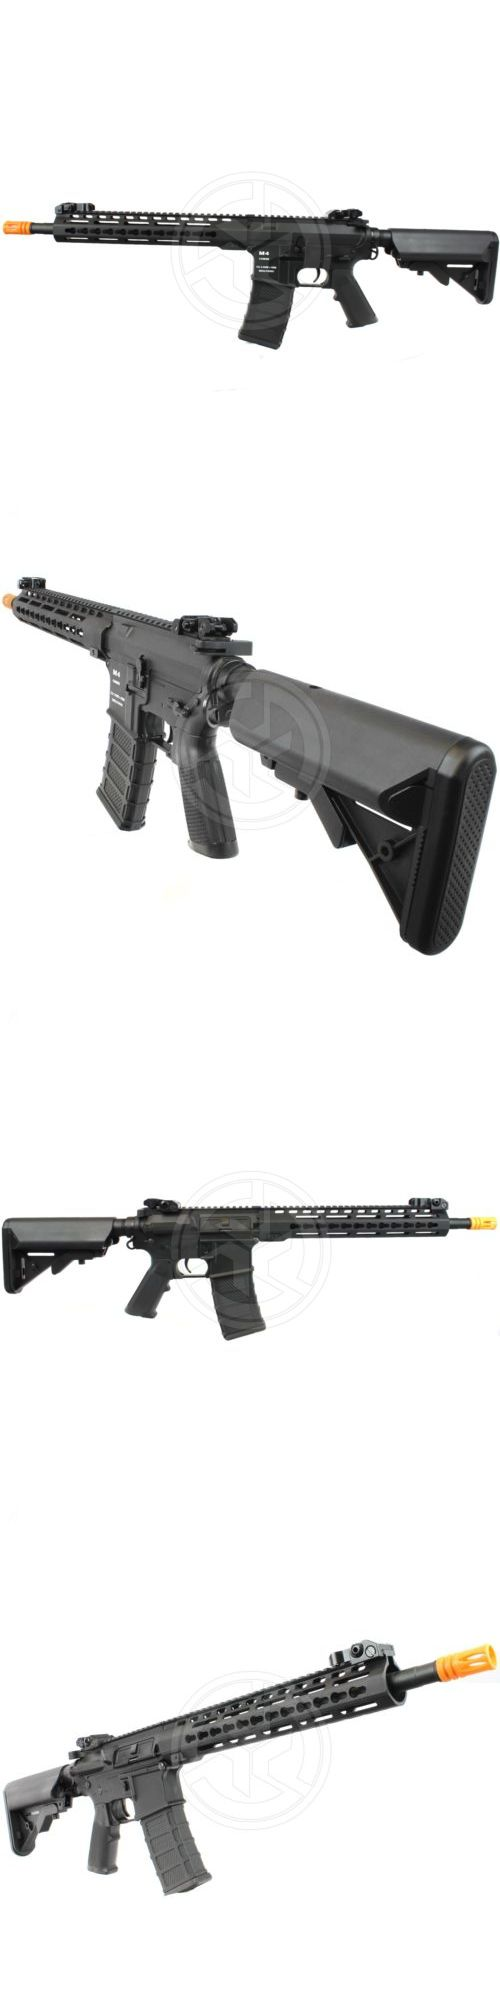 Rifle 160919: Classic Army Km12 Skirmish Nylon Fiber M4 Aeg W Basic Battery And Charger Black -> BUY IT NOW ONLY: $179.99 on eBay!